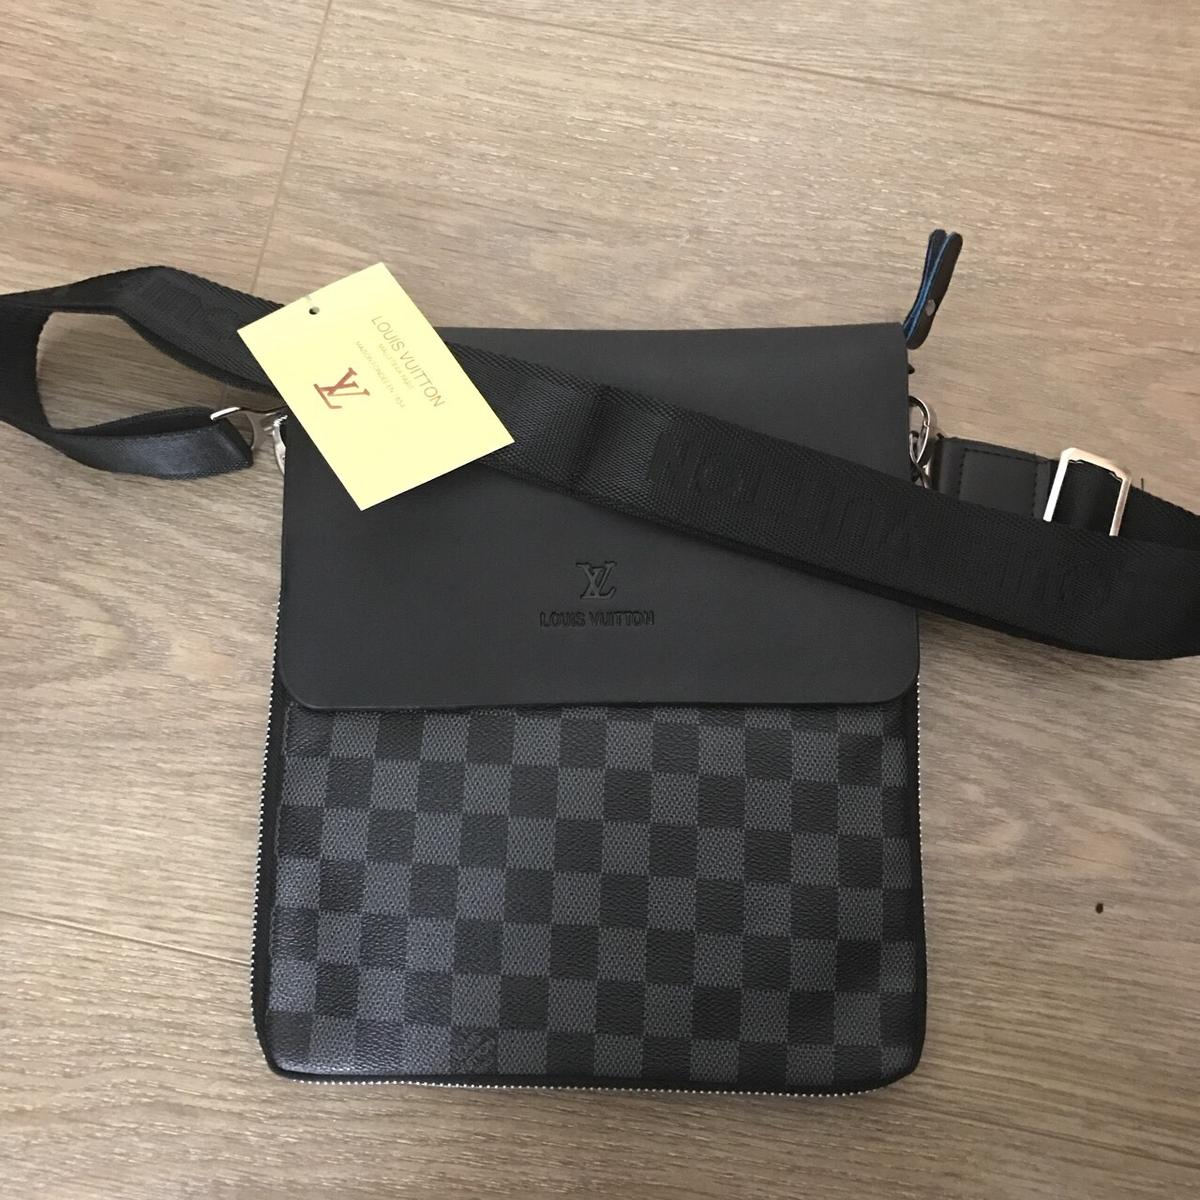 37f2d3a91fa Mens louis vuitton messenger bag in HP1 Hempstead for £50.00 for ...